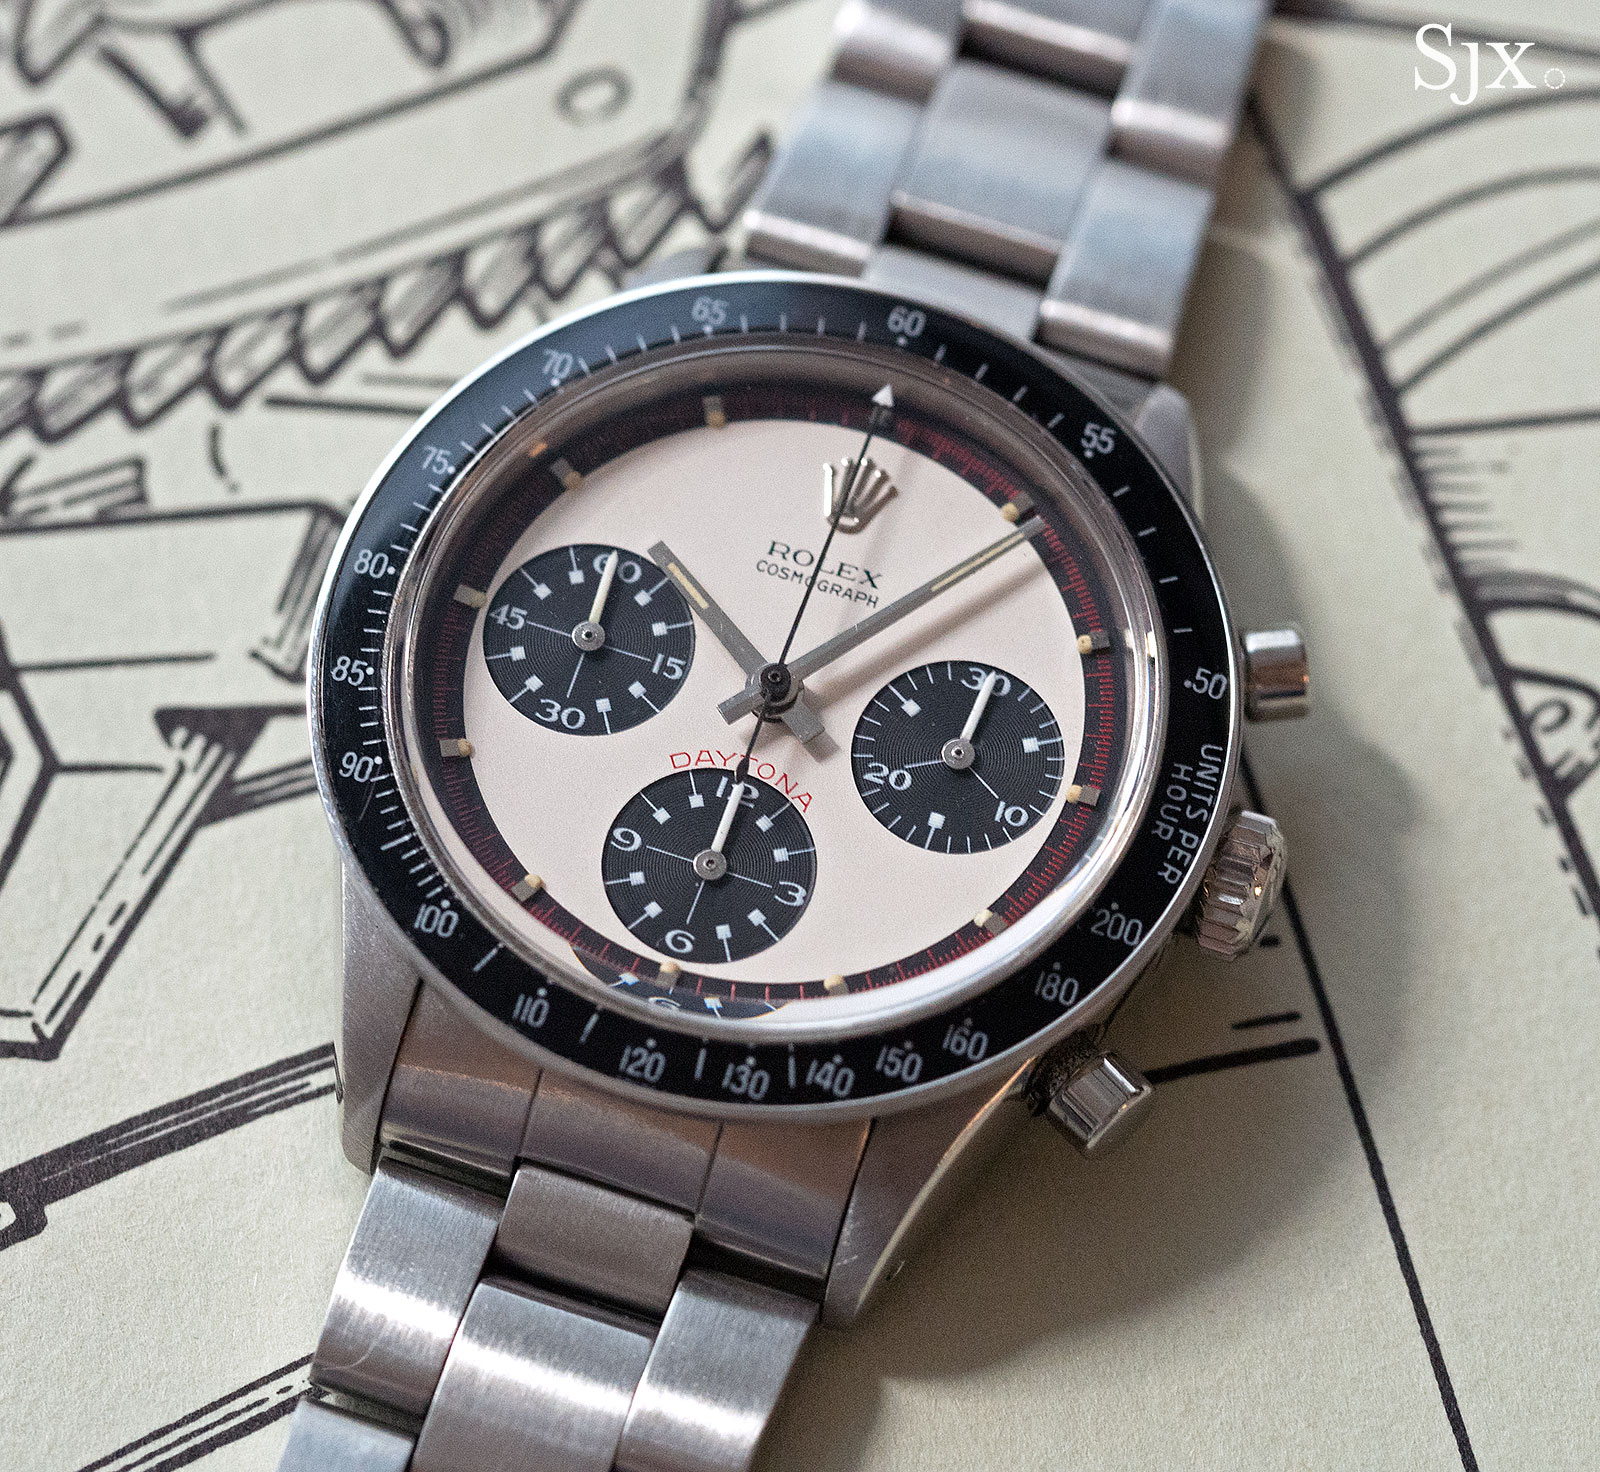 Phillips HKWA3 Rolex Daytona Paul Newman 6241 - 1